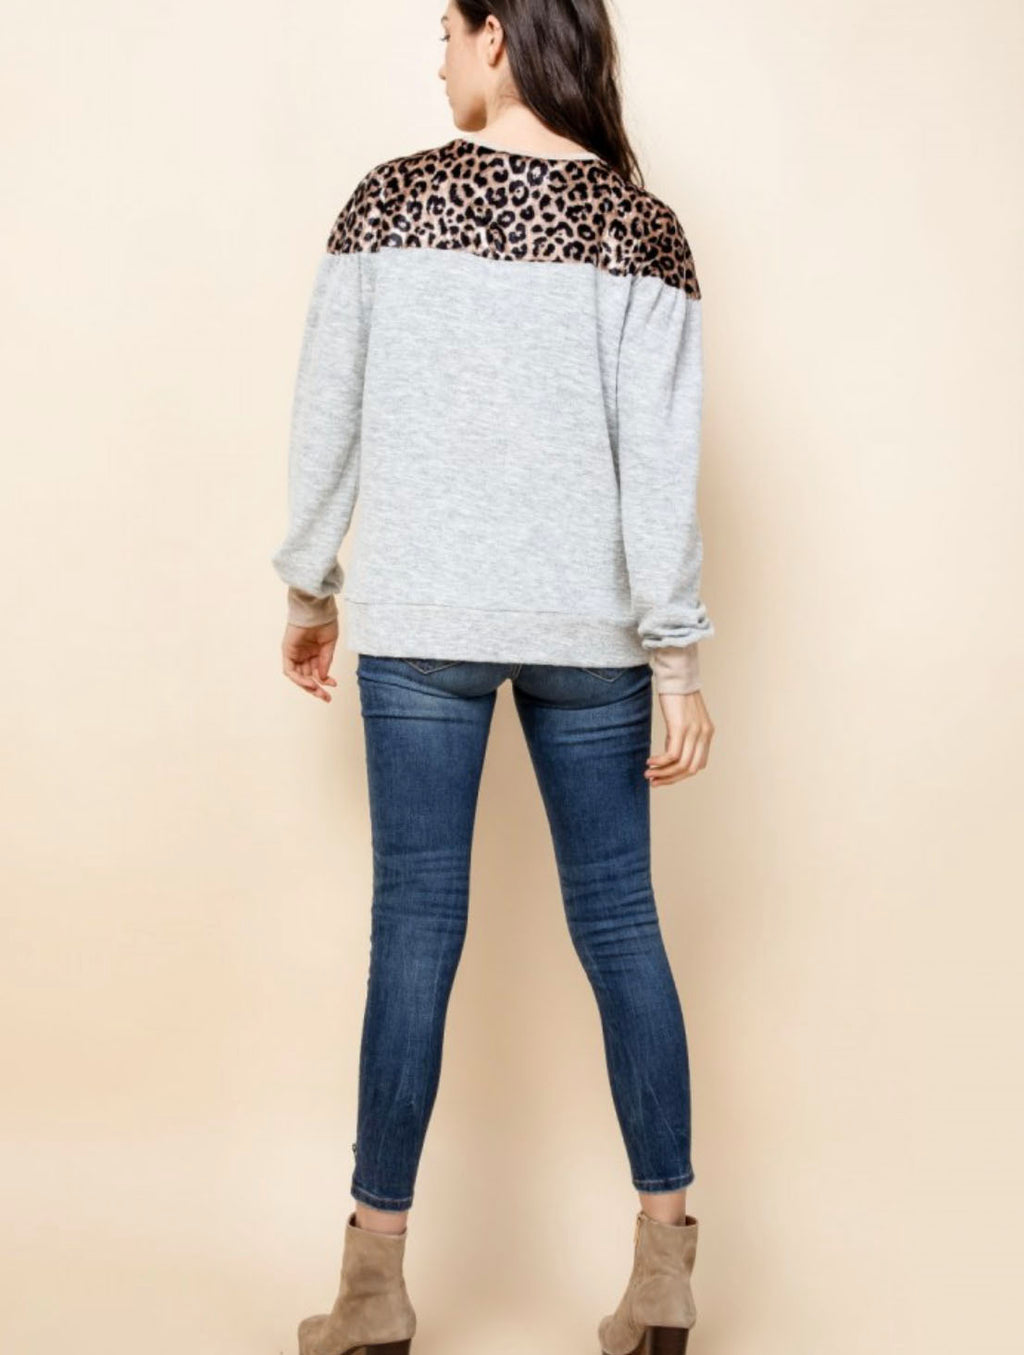 THML Crew Neck Sweater in Heather Grey with Orange Leopard